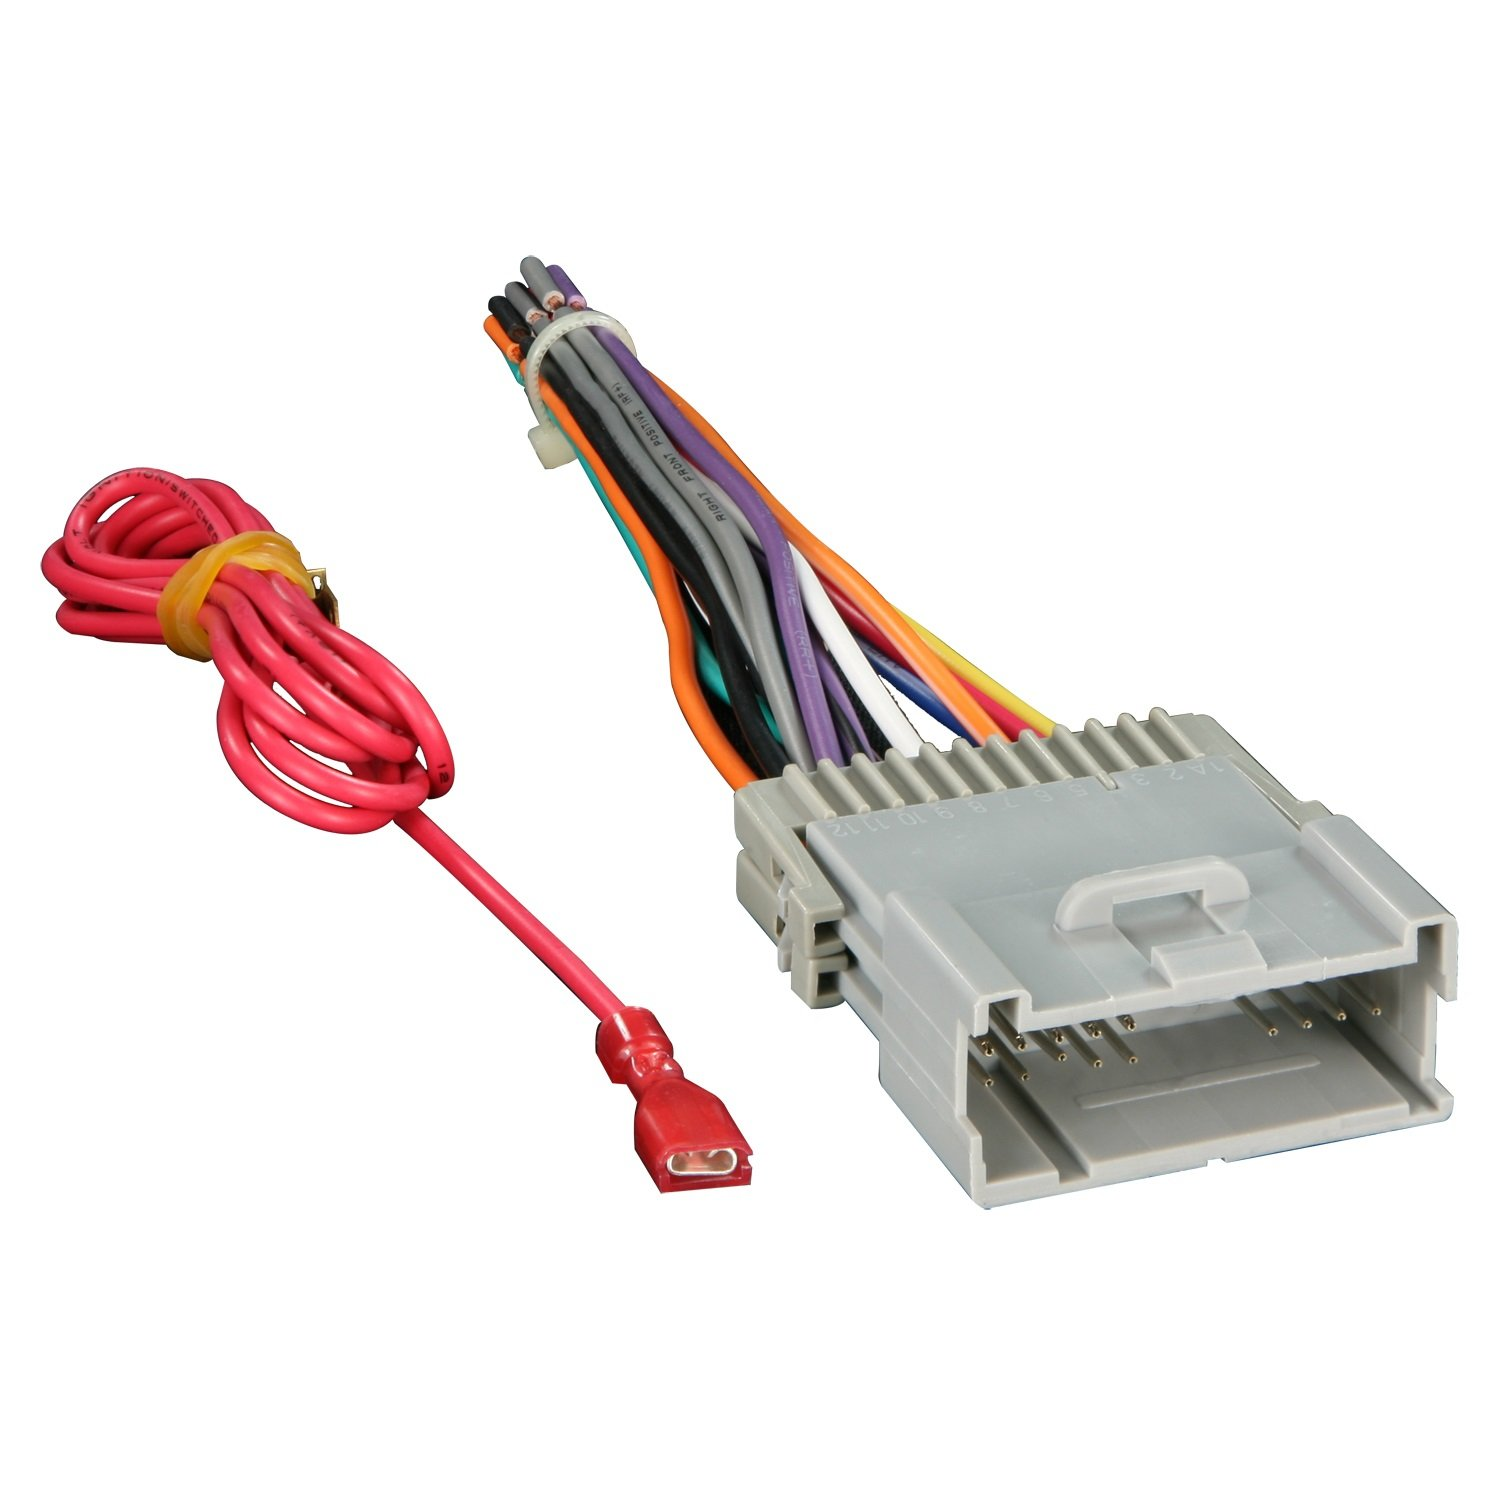 61eewxp9orL._SL1500_ amazon com metra 70 2003 radio wiring harness for gm 98 08 radio wire harness kits at gsmx.co